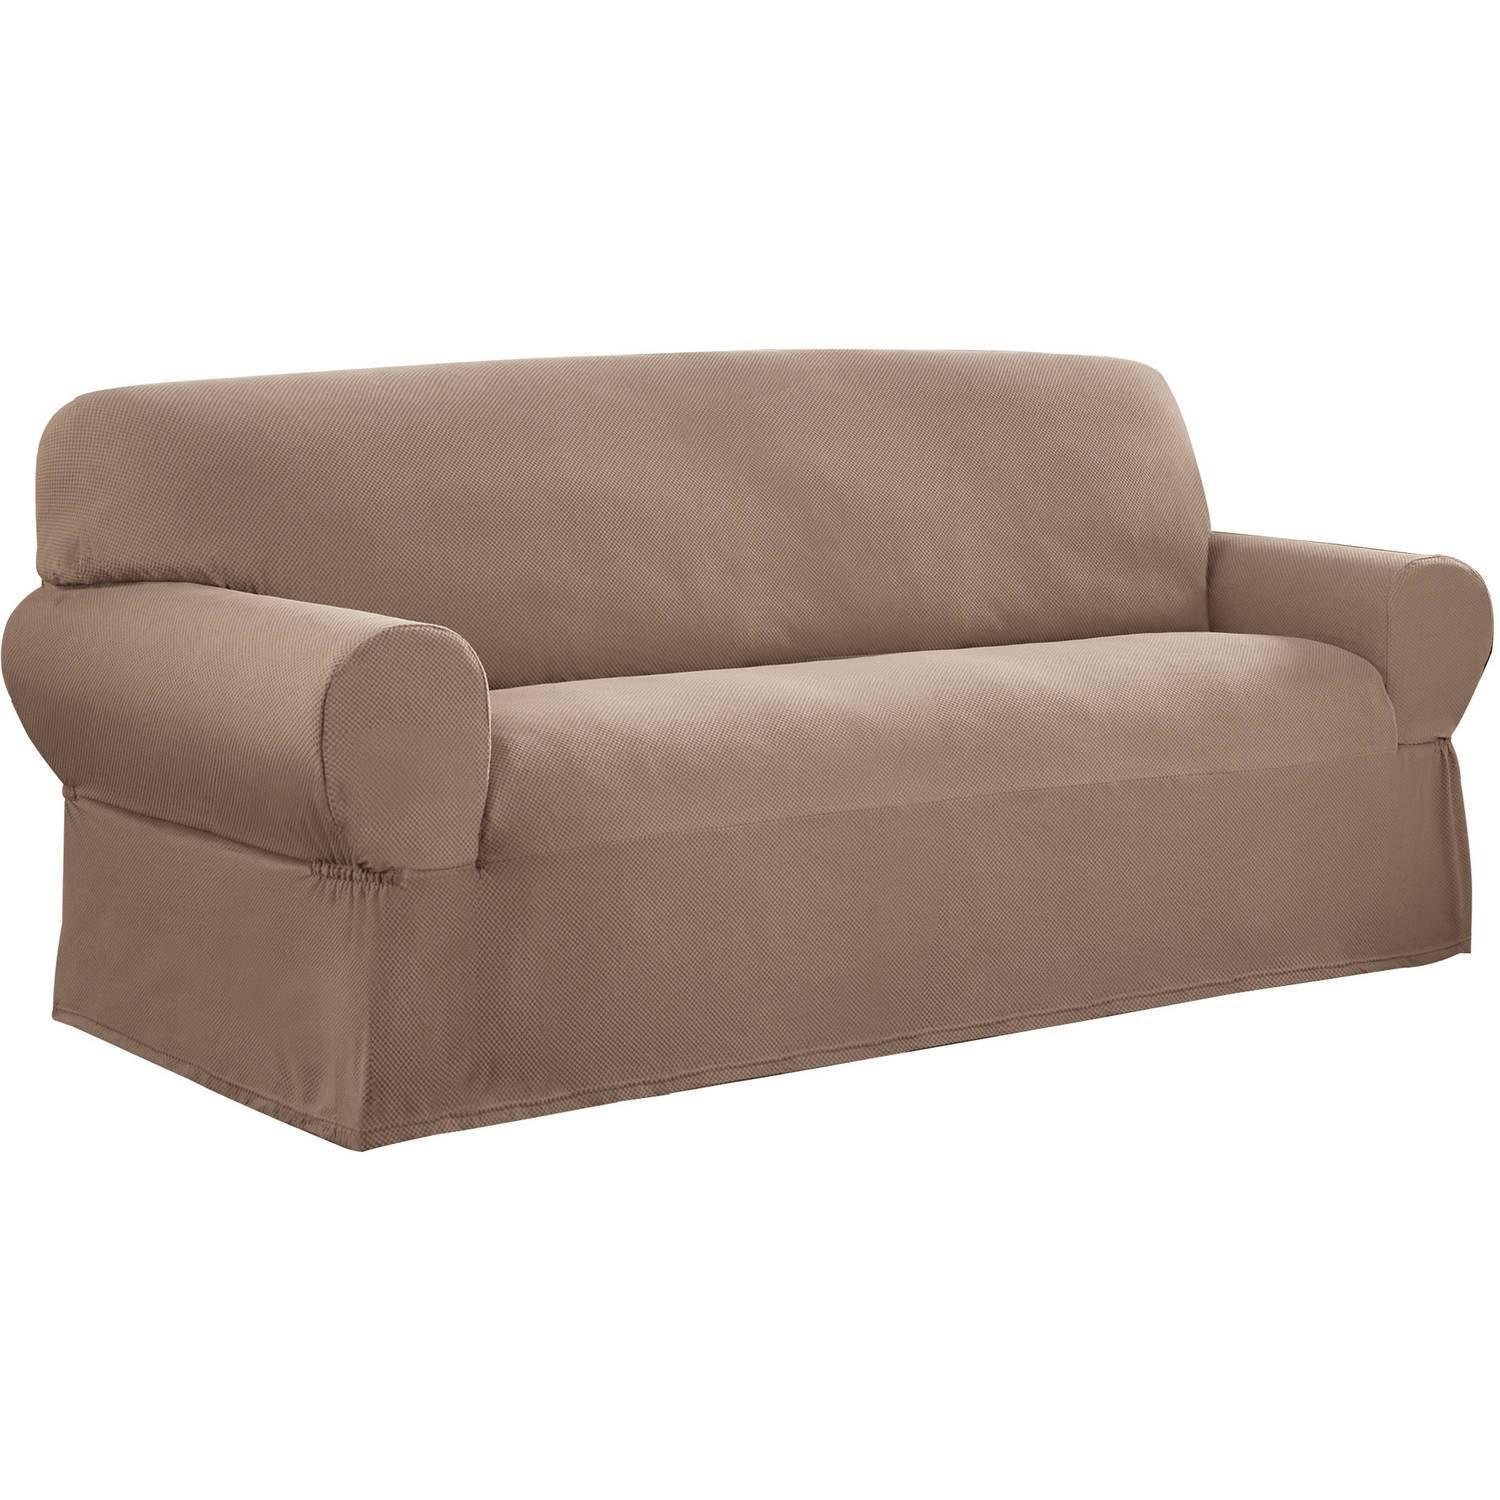 Mainstays 1 Piece Stretch Fabric Sofa Slipcover – Walmart Intended For Sleeper Sofa Slipcovers (View 5 of 15)